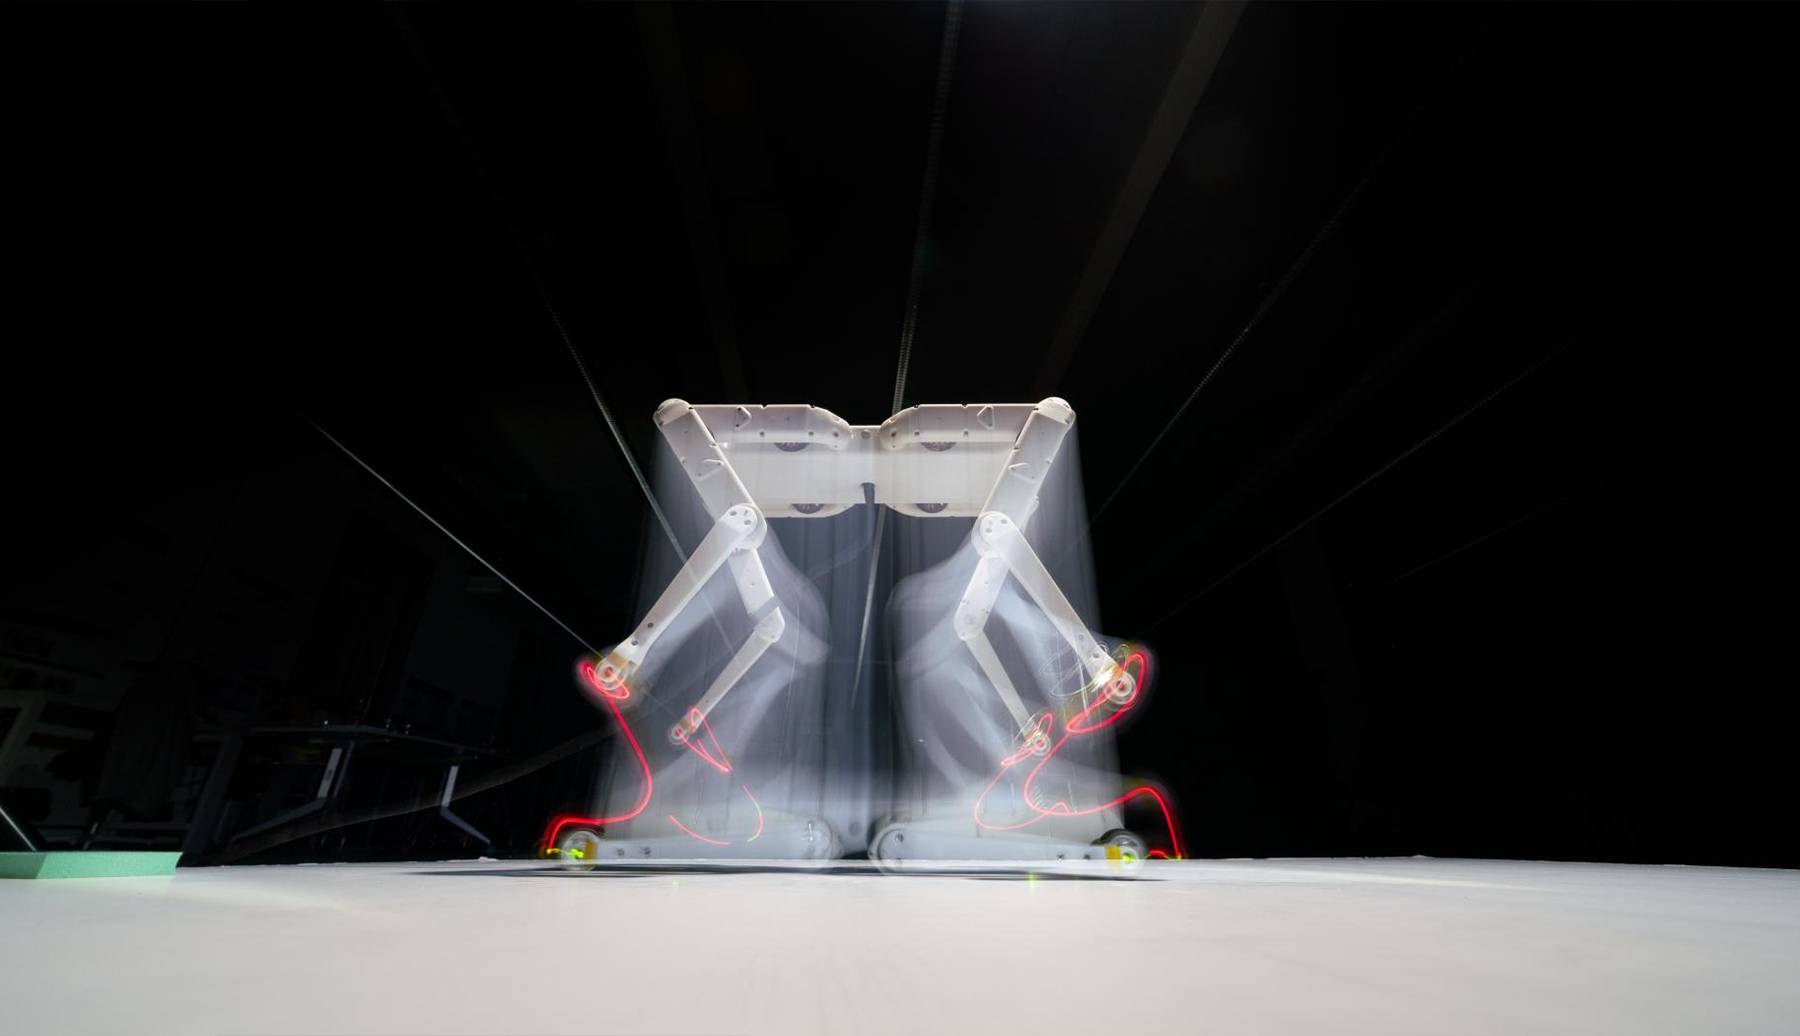 Open-source, low-cost, quadruped robot makes sophisticated robotics available to all